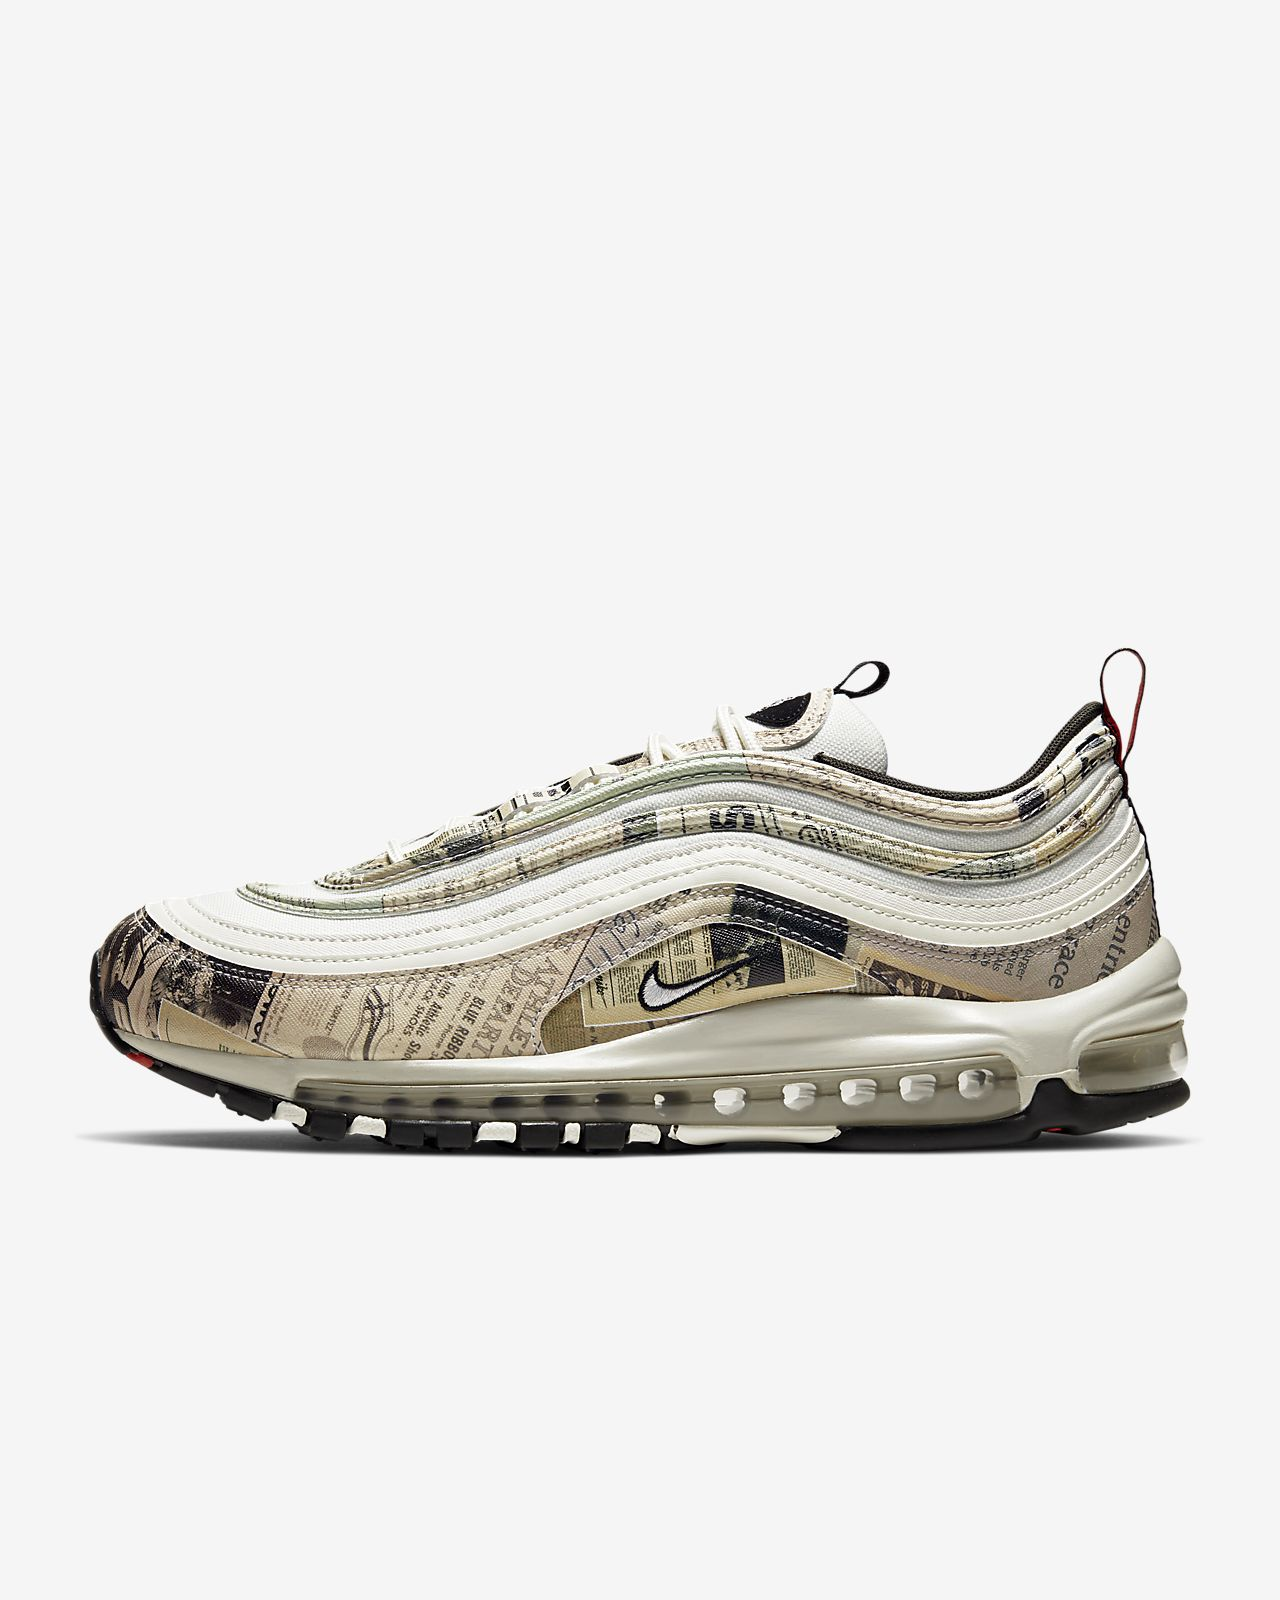 Nike Air Max 97 Air Force 1 Turnschuhe Nike png